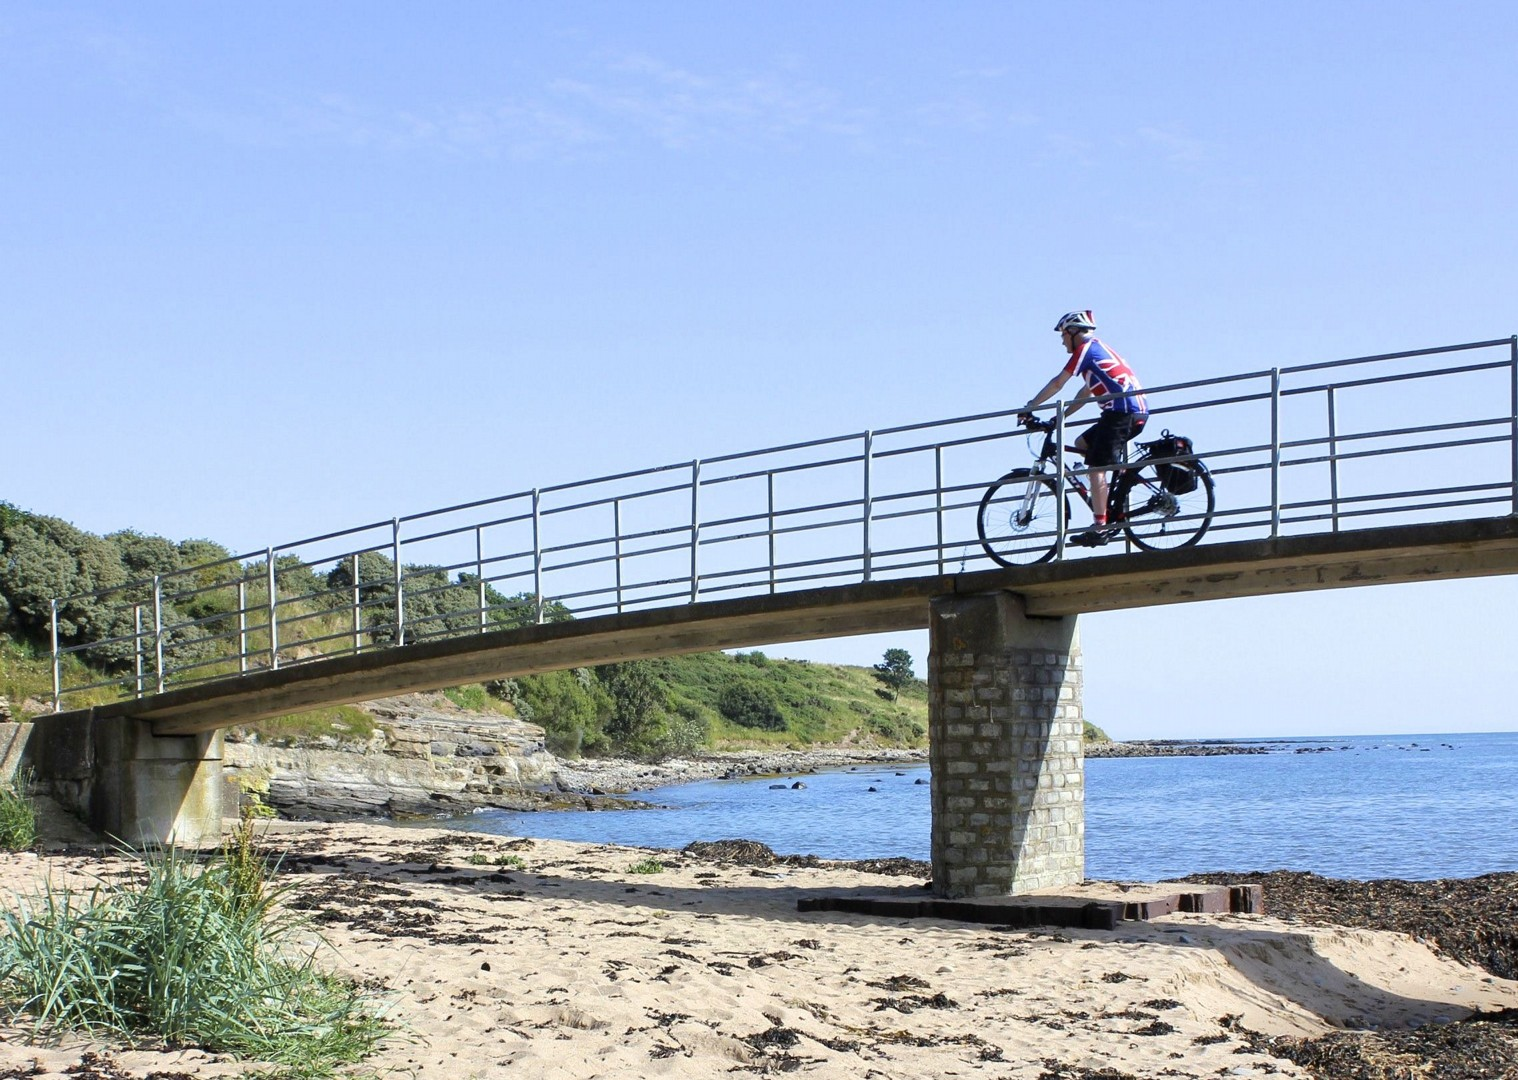 Coast&castles.jpg - UK - Northumberland - Alnmouth - Self-Guided Leisure Cycling Holiday - Leisure Cycling